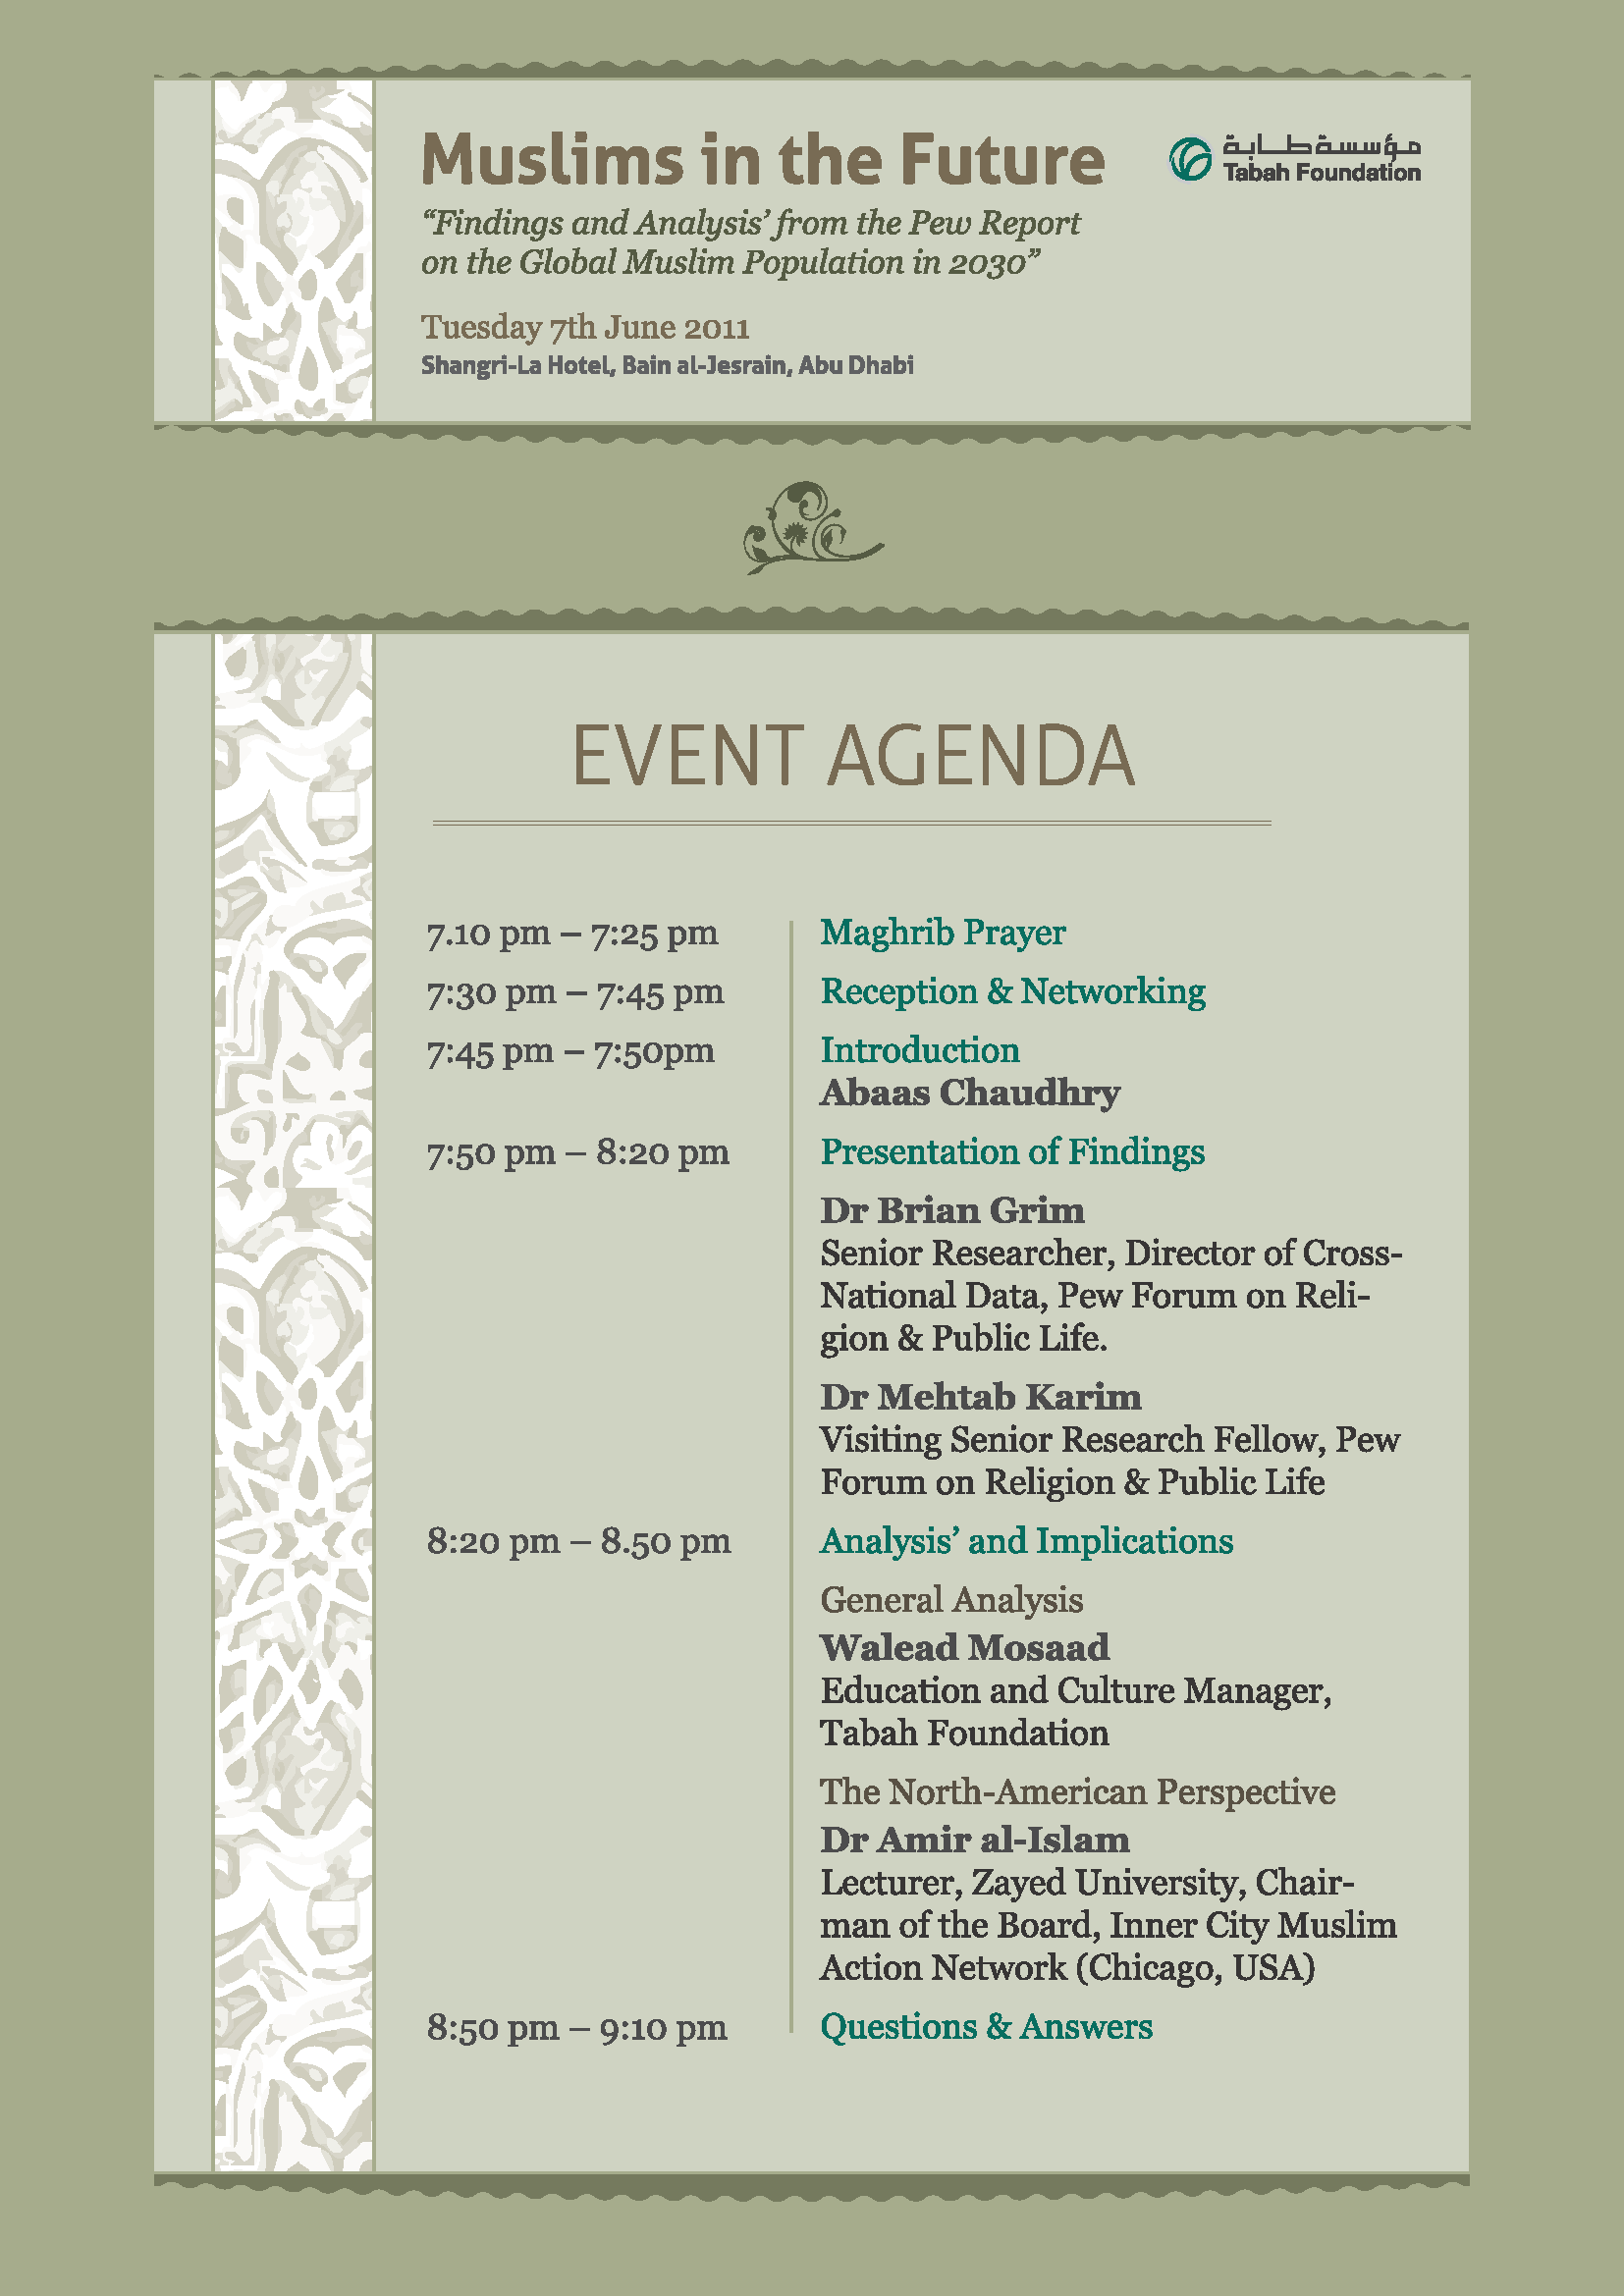 Invitation to attend event on Muslims in the Future News – Event Agenda